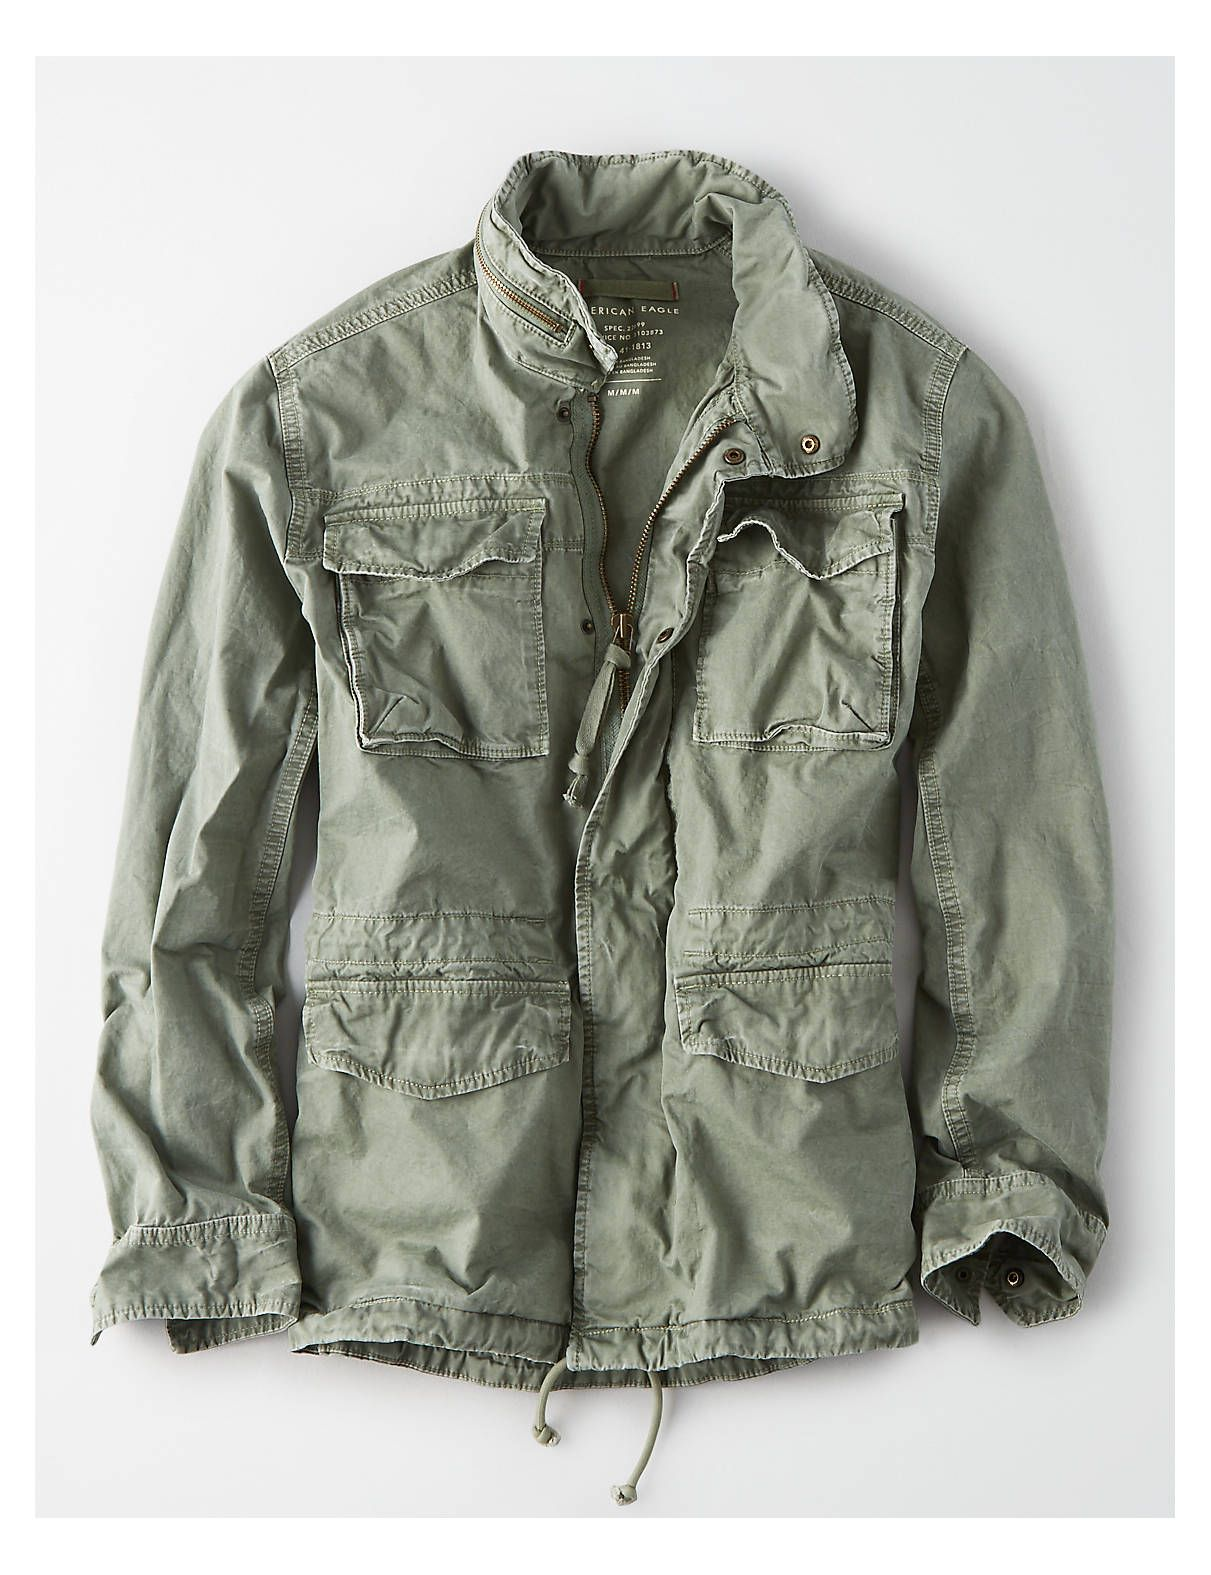 a45d856bc3684 AE Military Jacket in 2019 | Jackets | Jackets, Military jacket ...